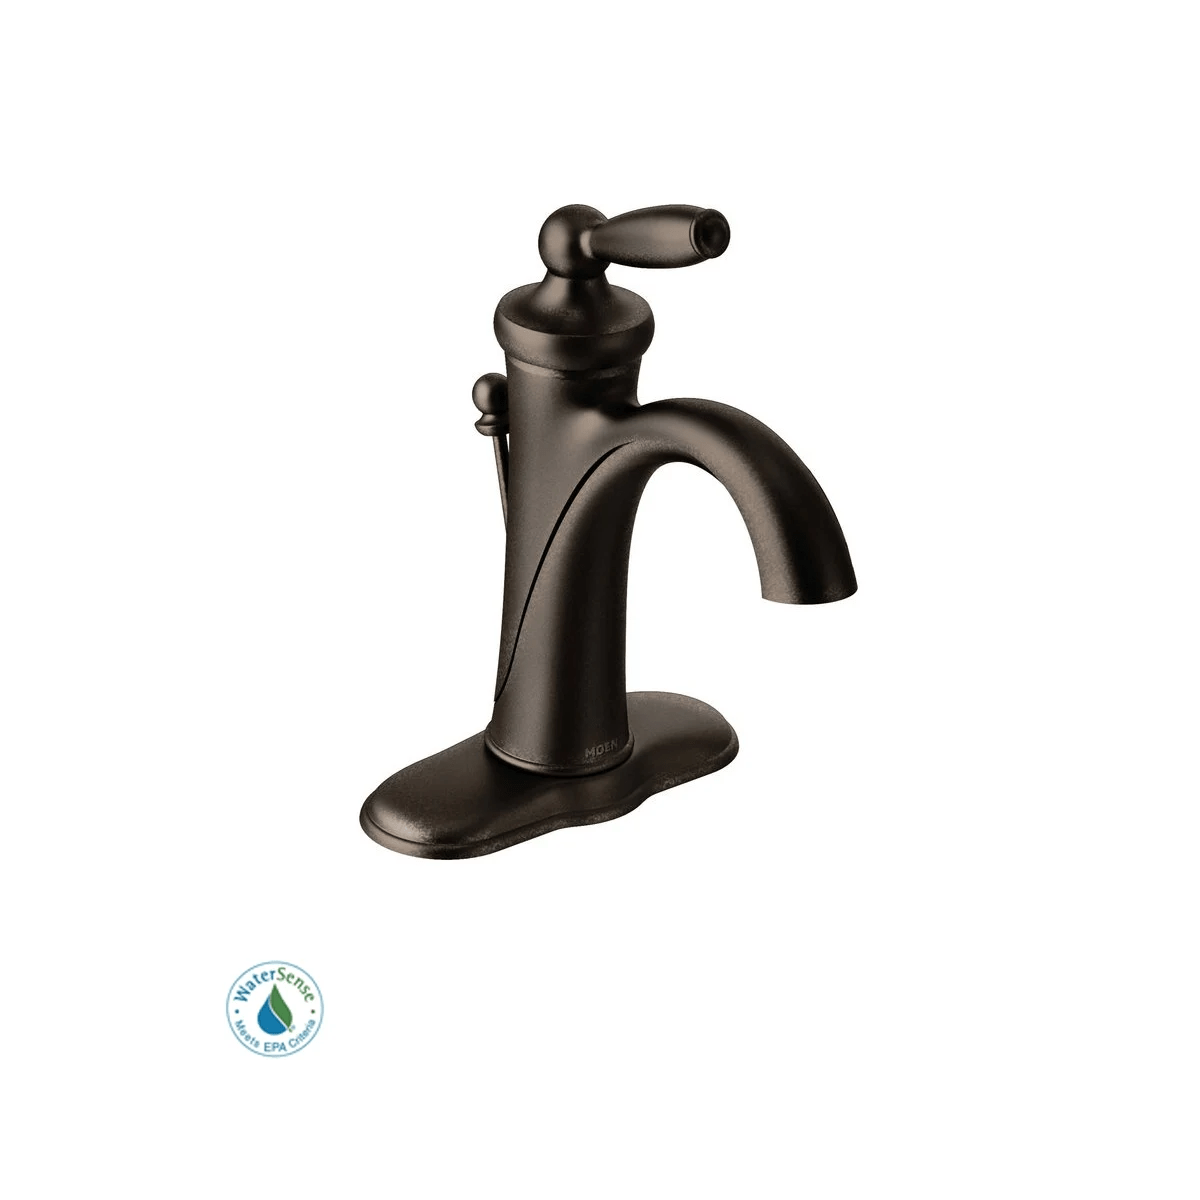 Moen Kingsley Bathroom Faucet Moen 6600